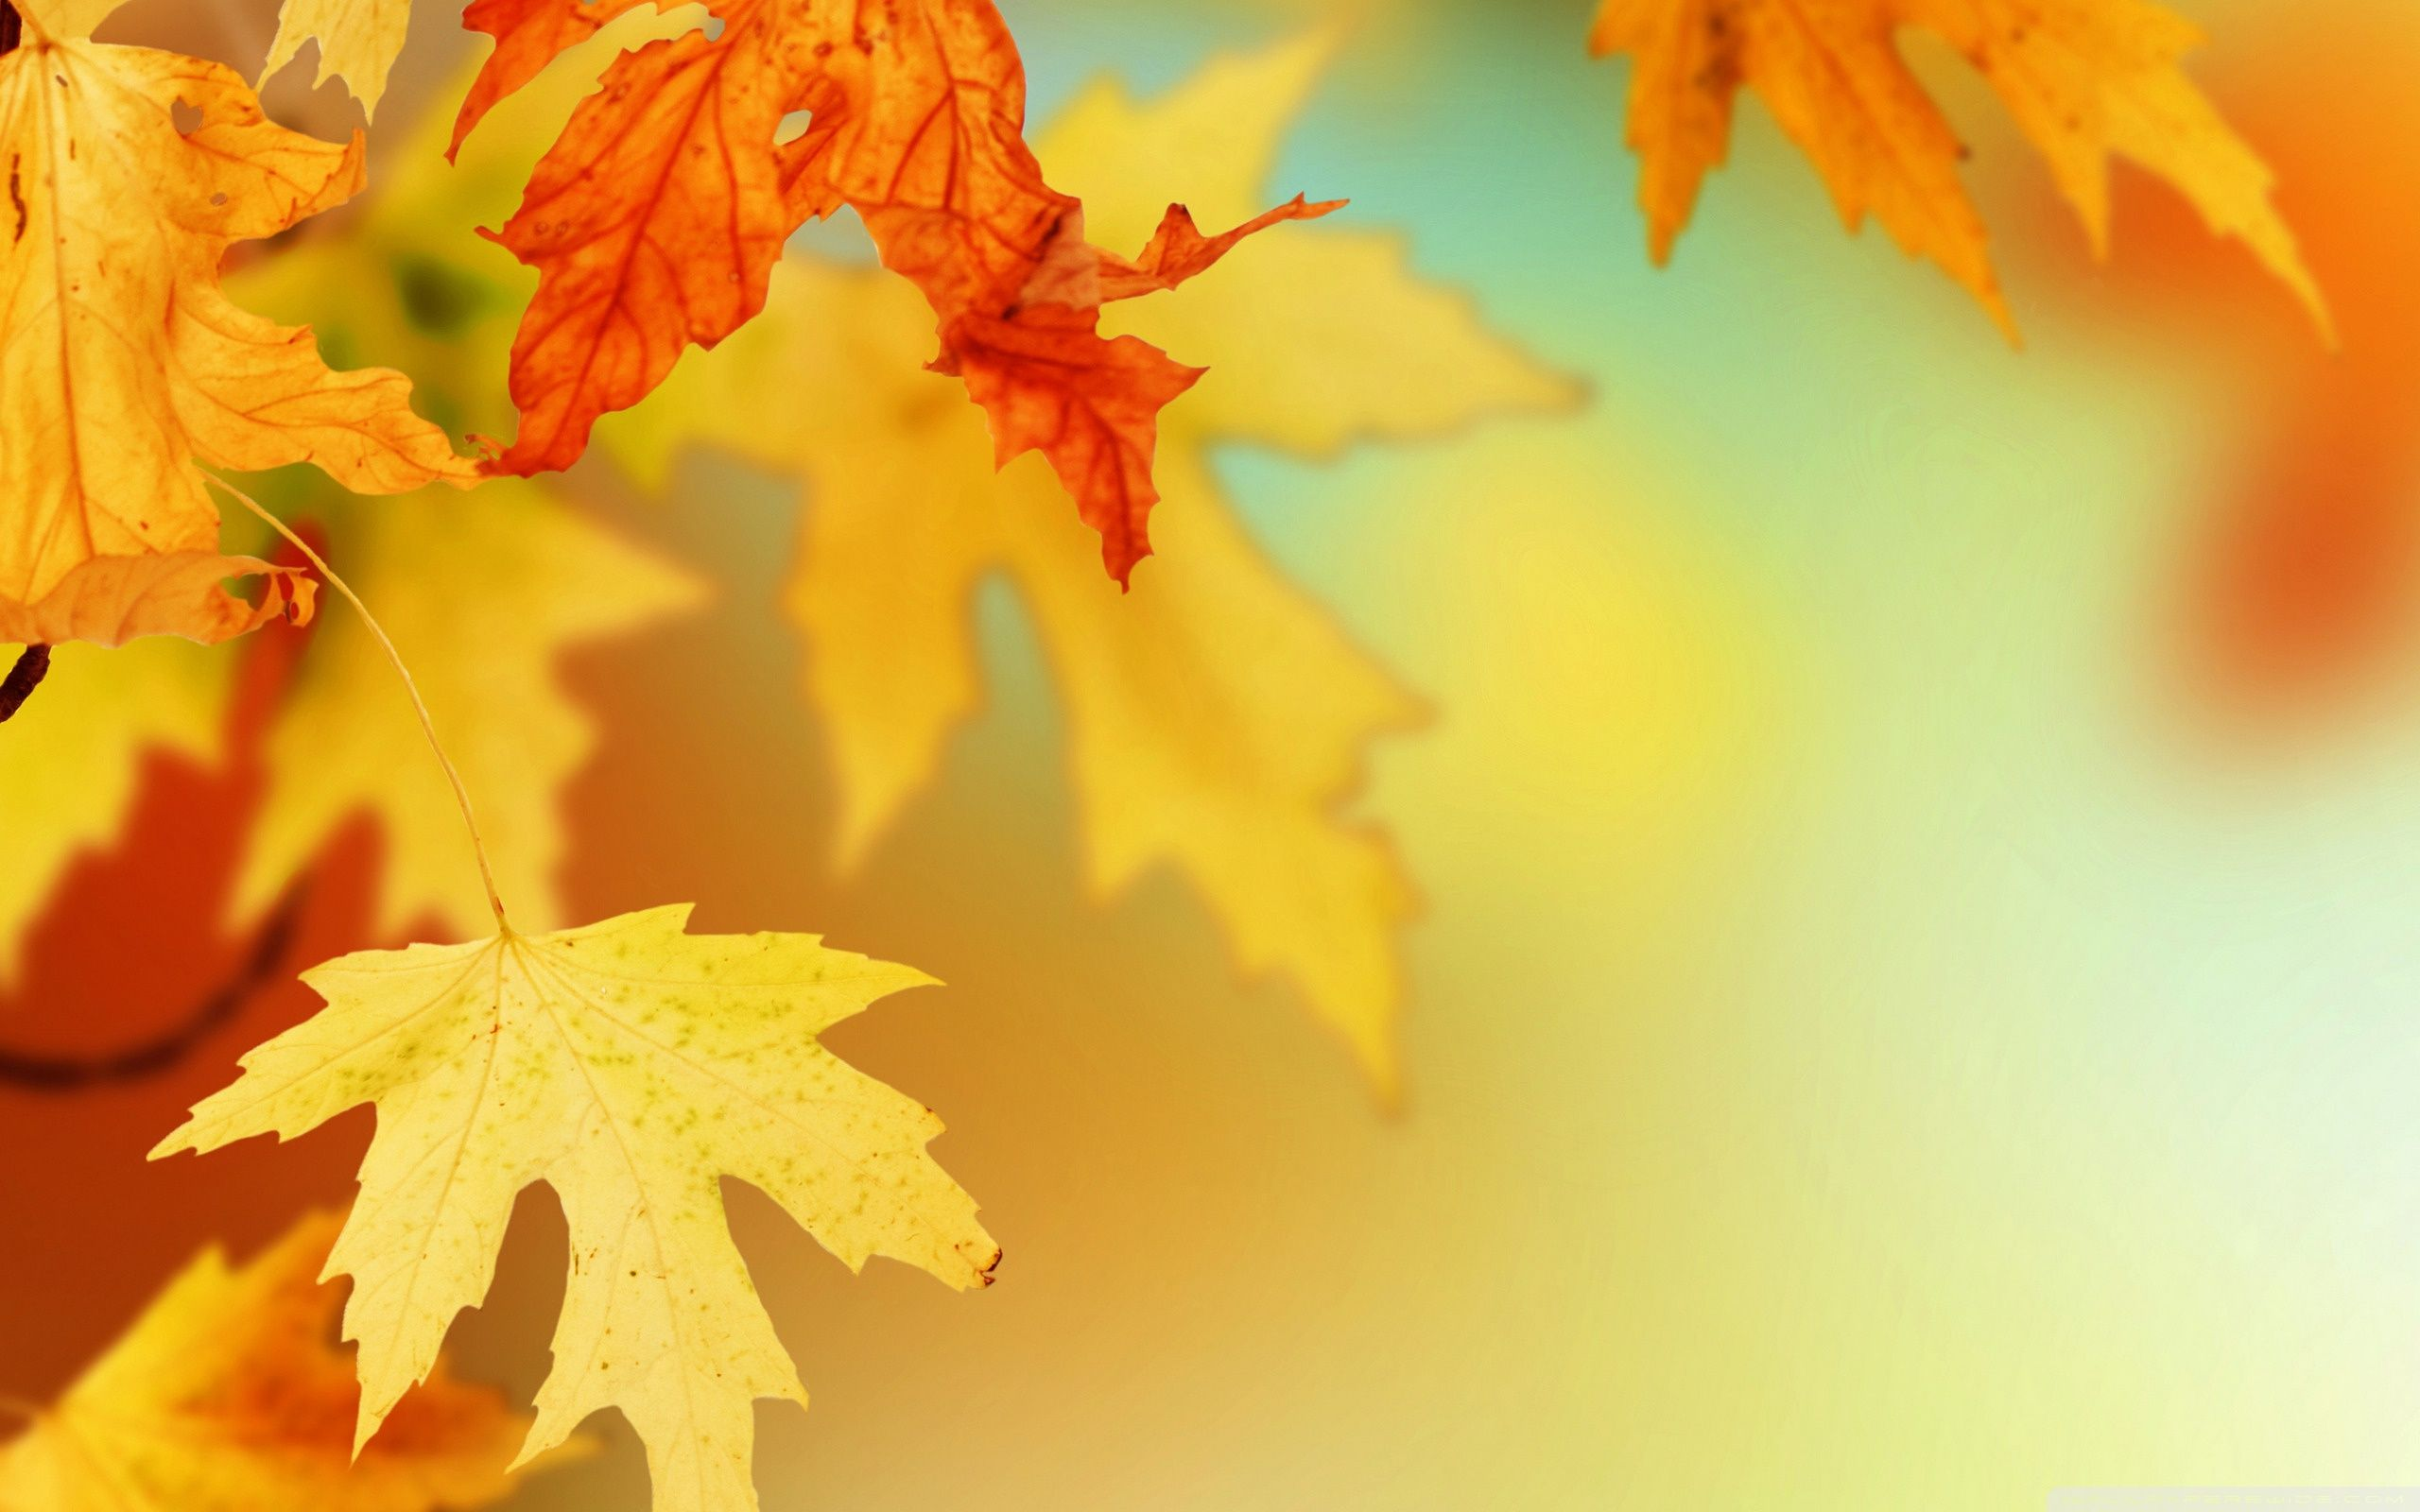 Free Fall Leaves Backgrounds 414307 Hd Wallpaper